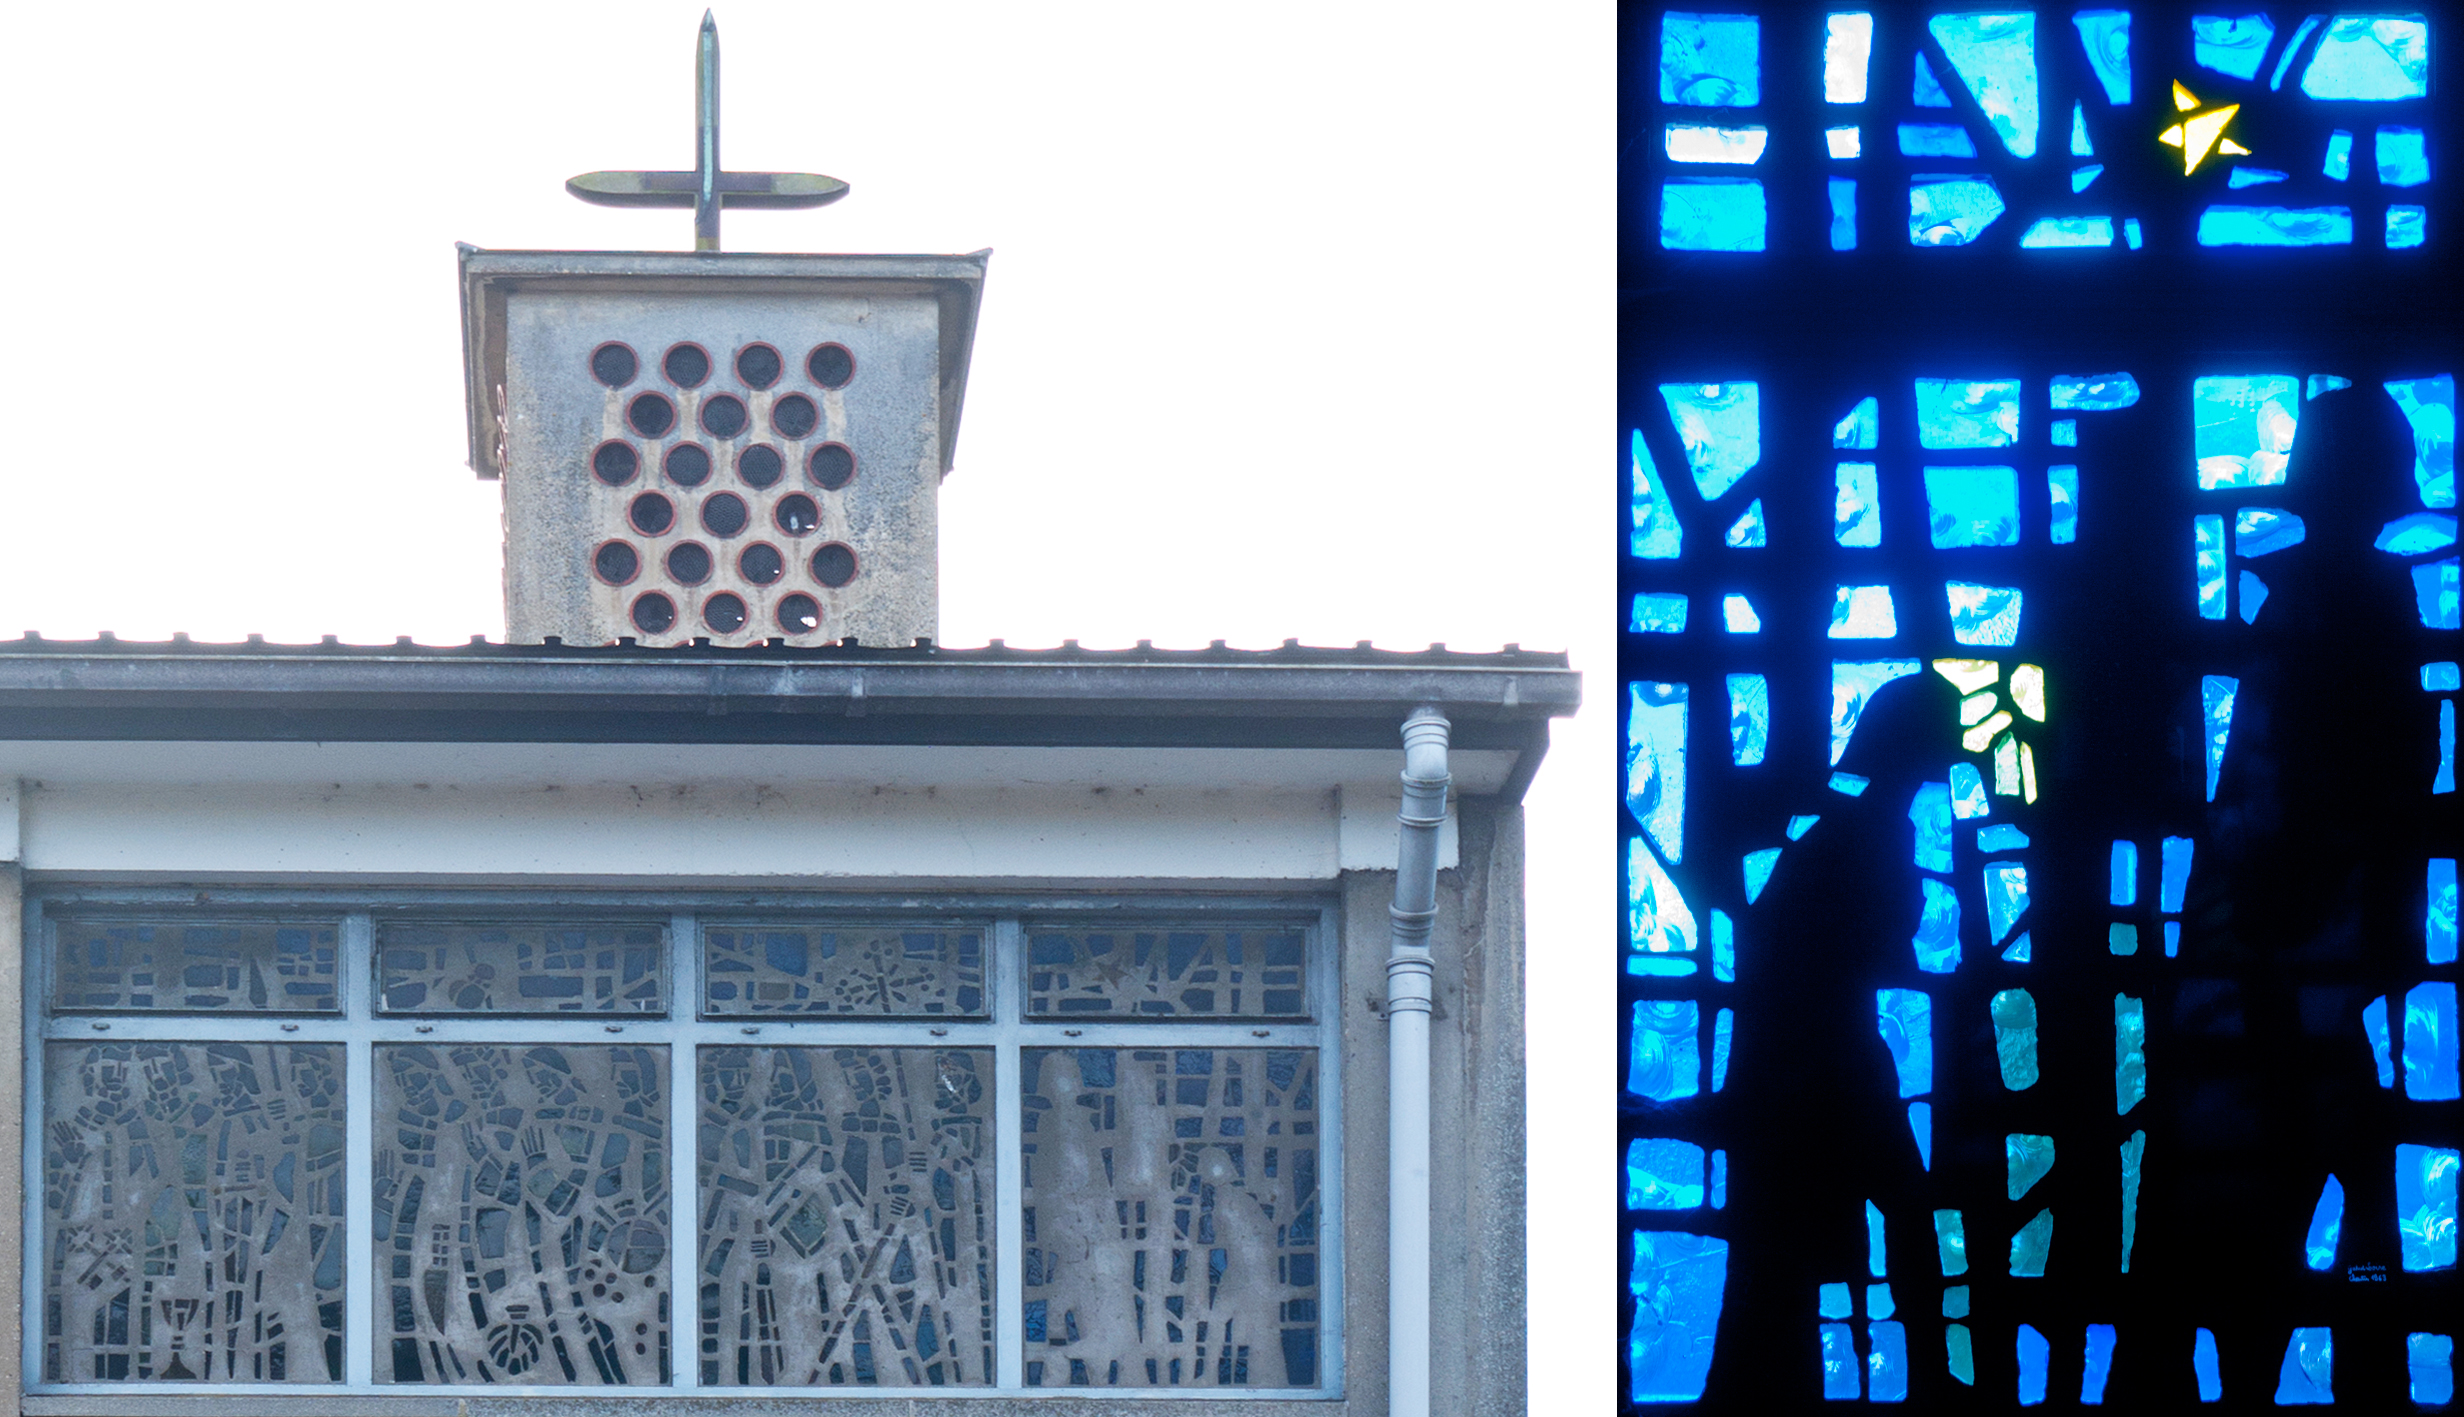 The same windows from the outside showing St. Peter leading Apostles: End window with two mysterious negative figures.